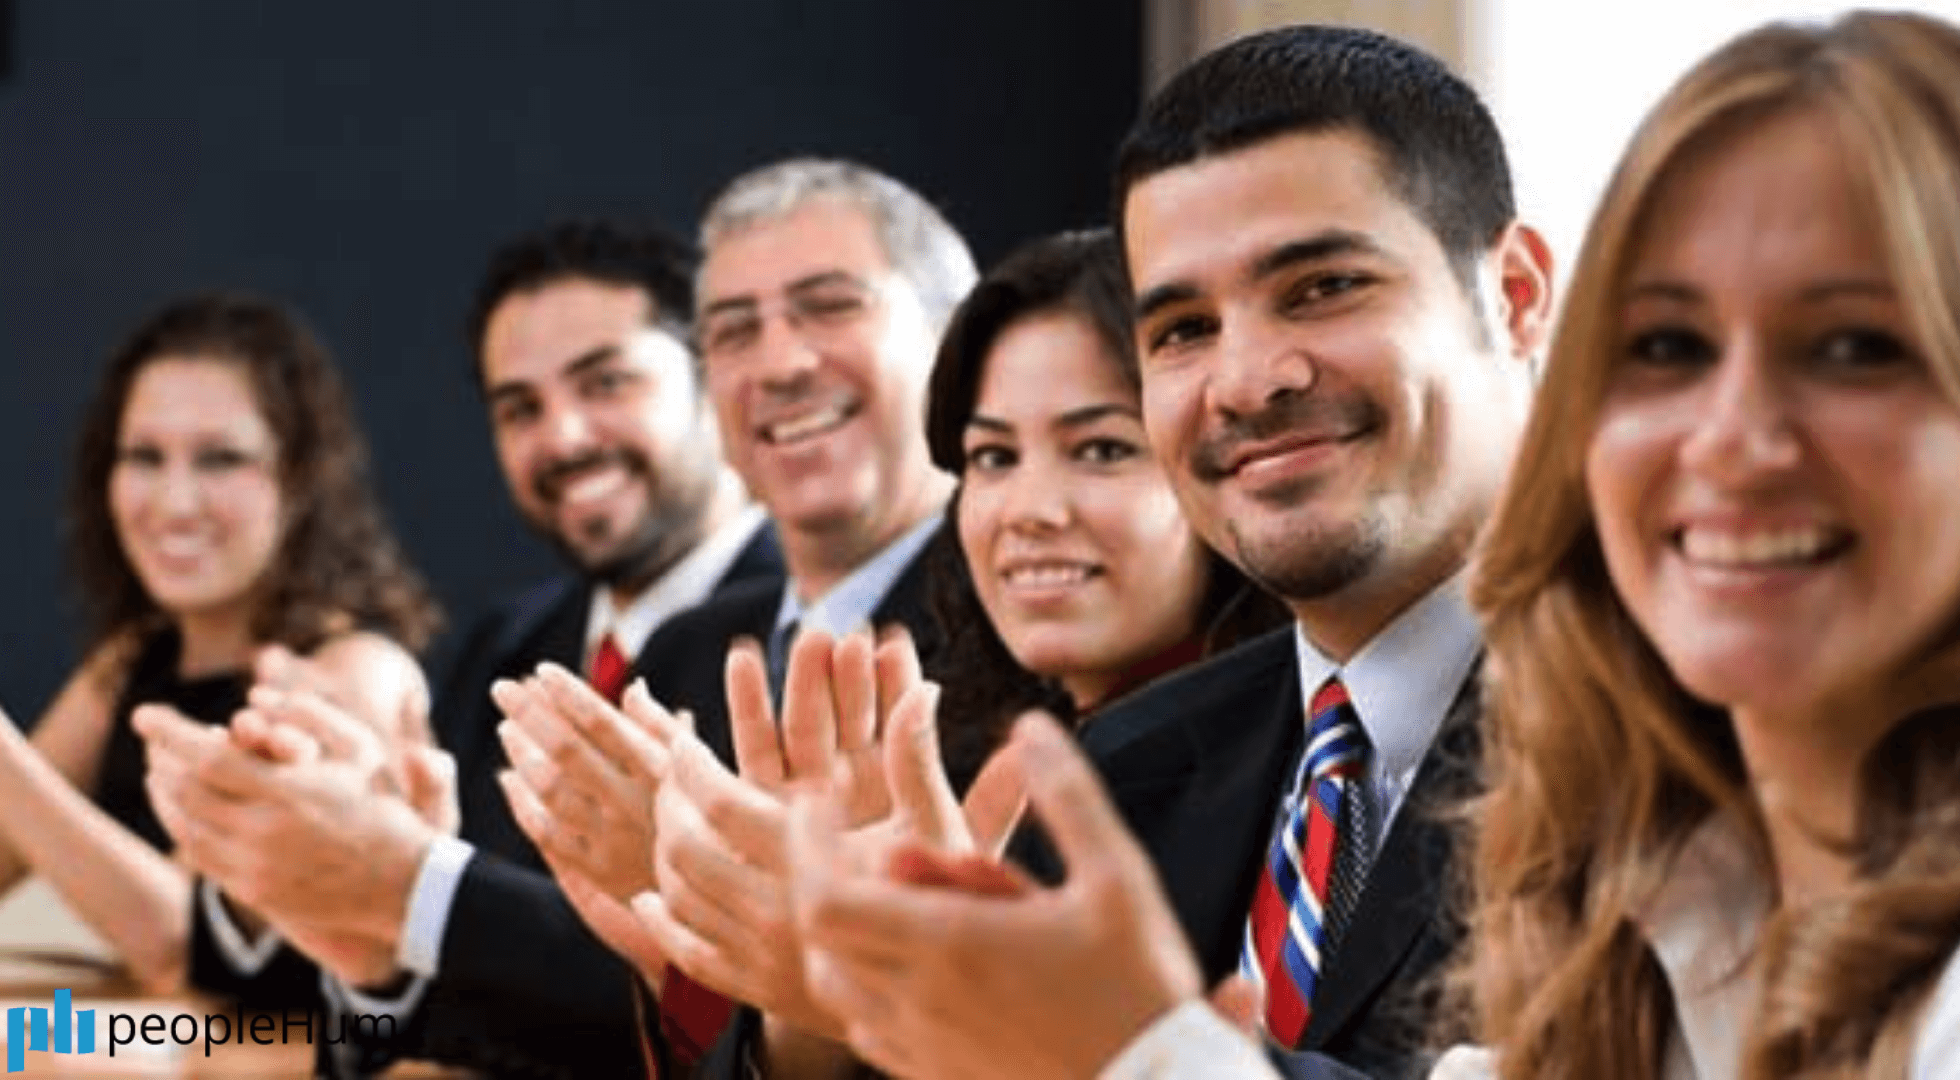 Is social recognition the key to keeping employees loyal?